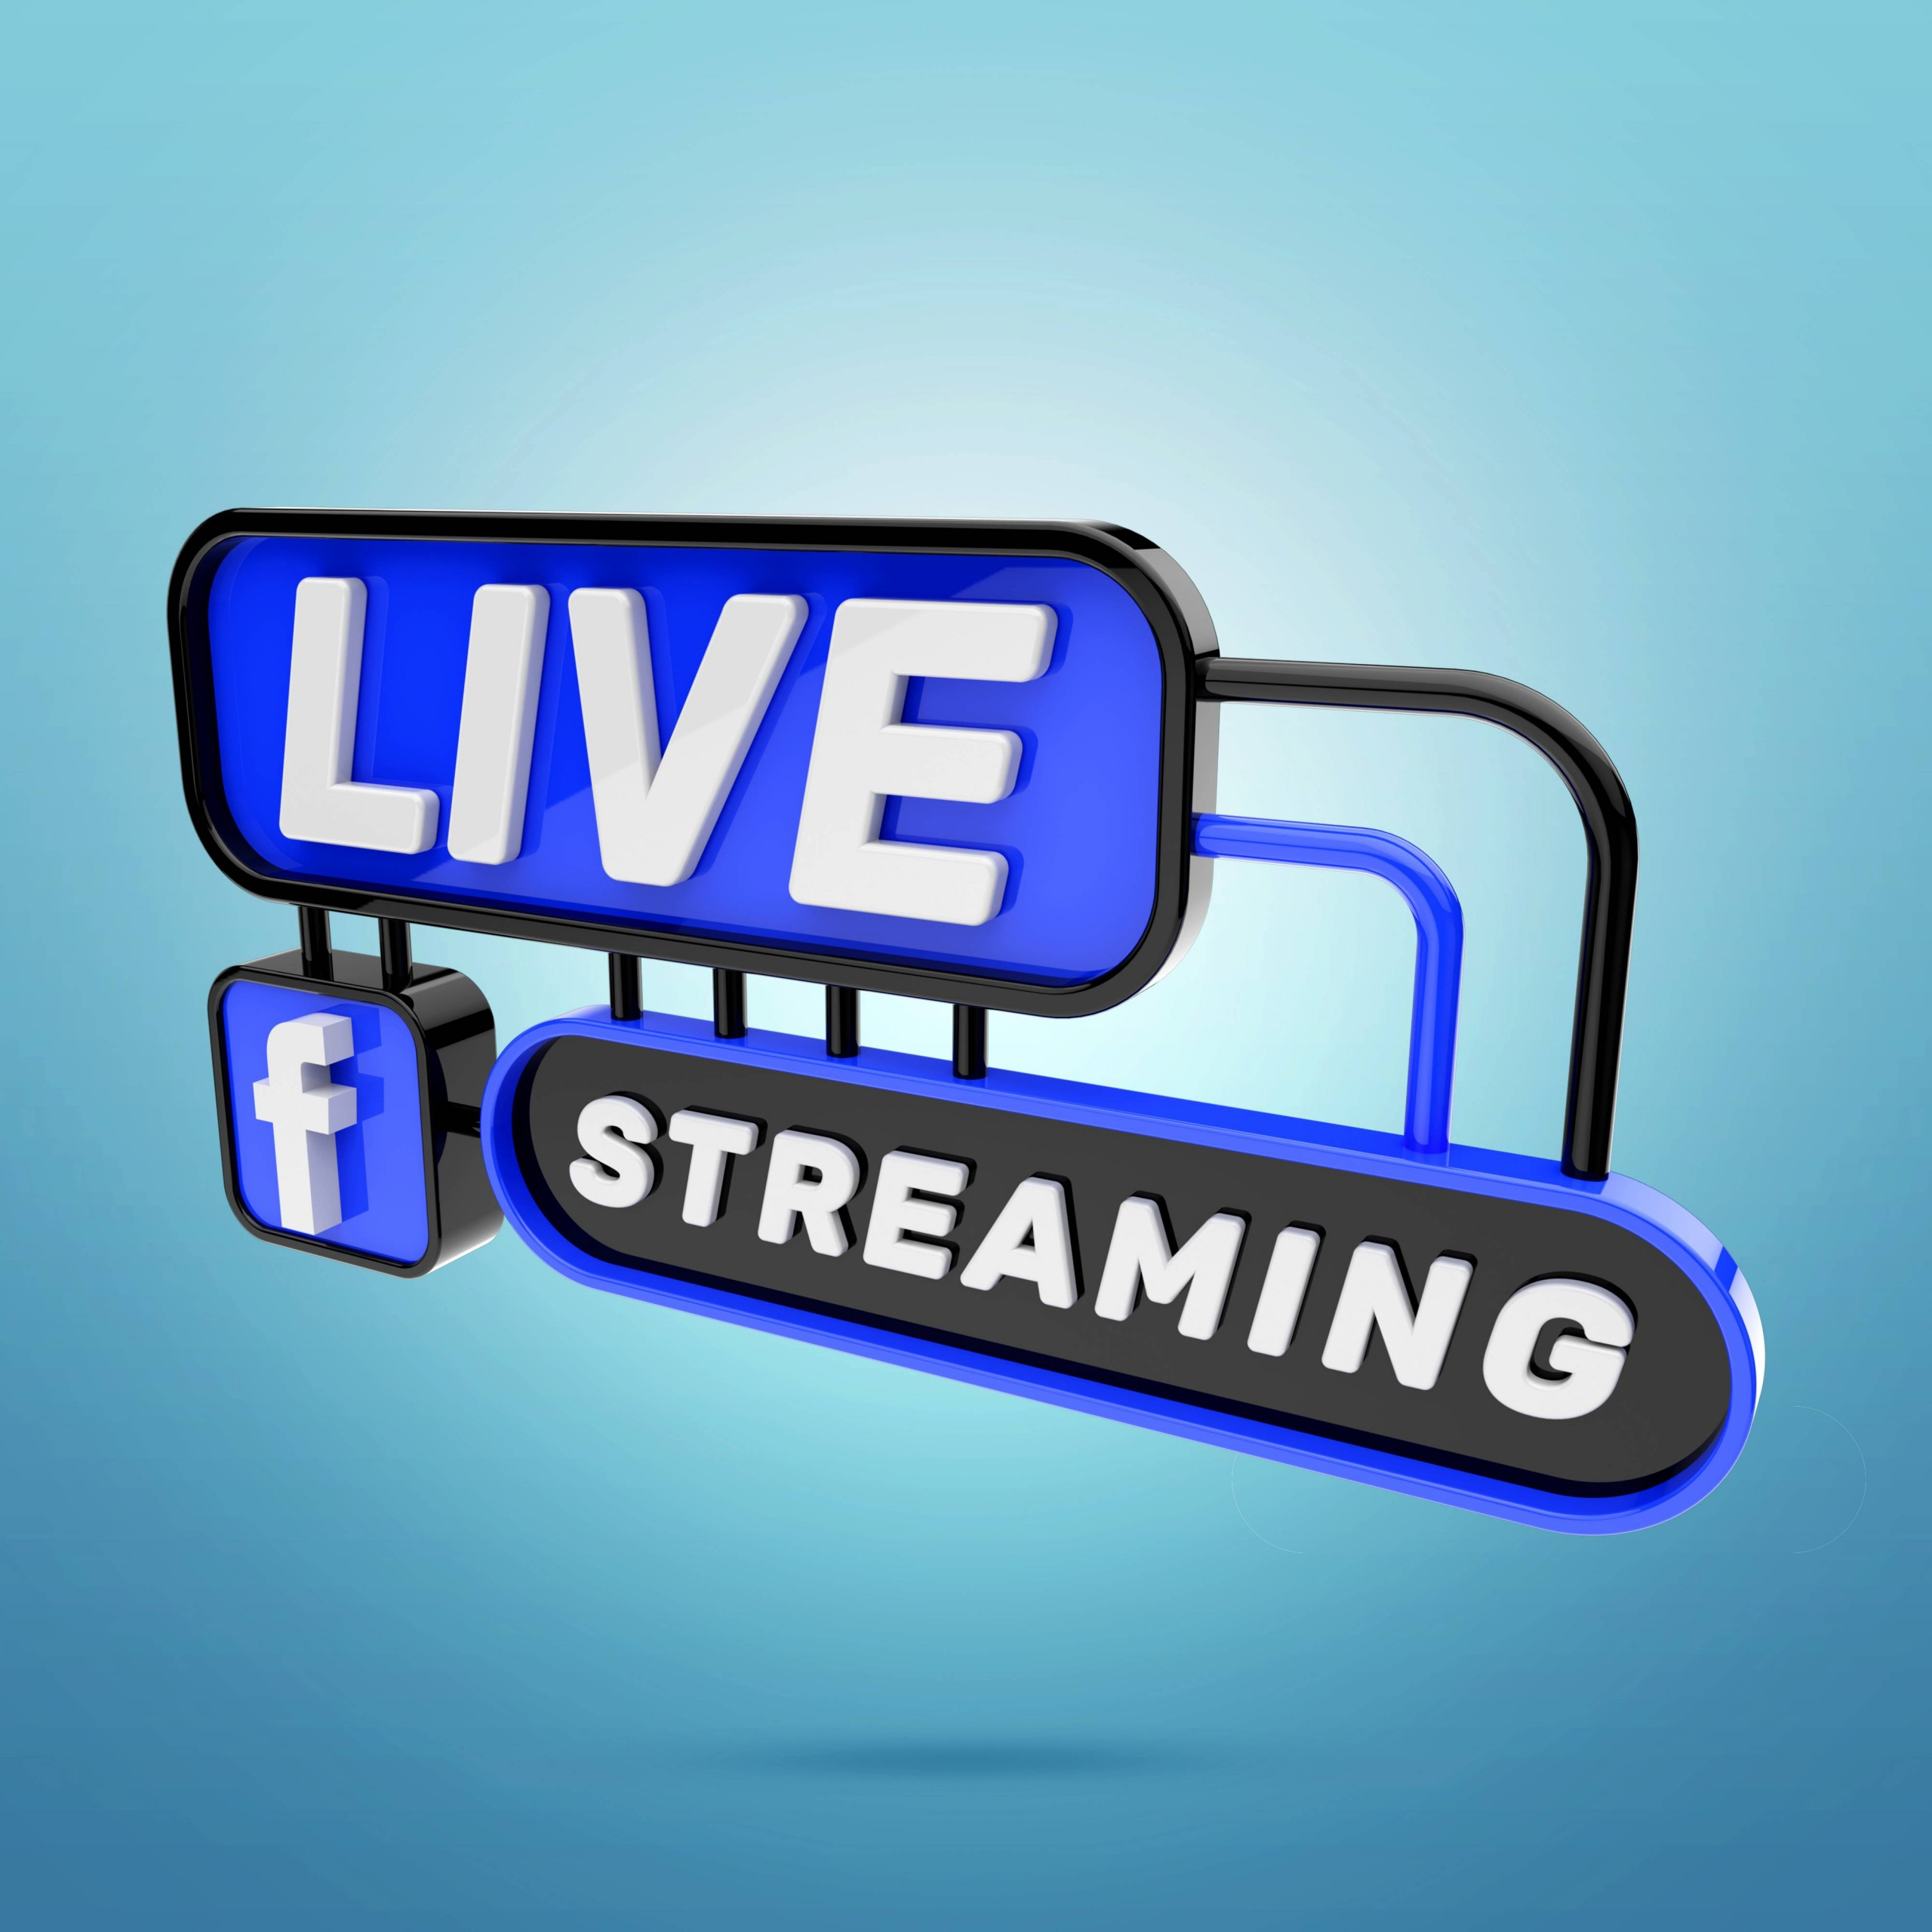 Streaming facebook live